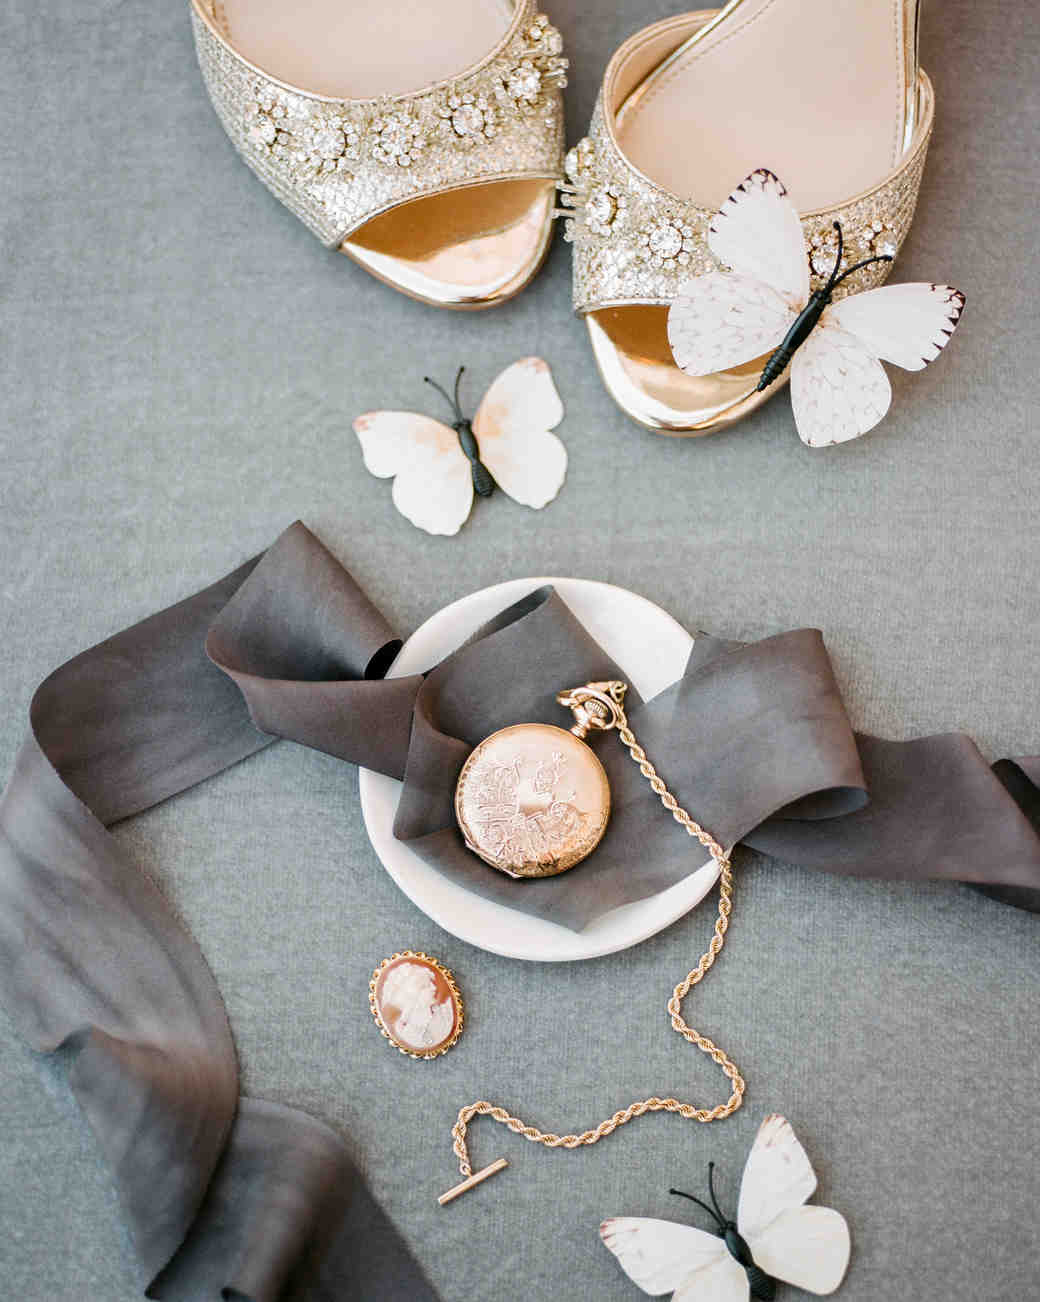 kiersten ruairi wedding accessories